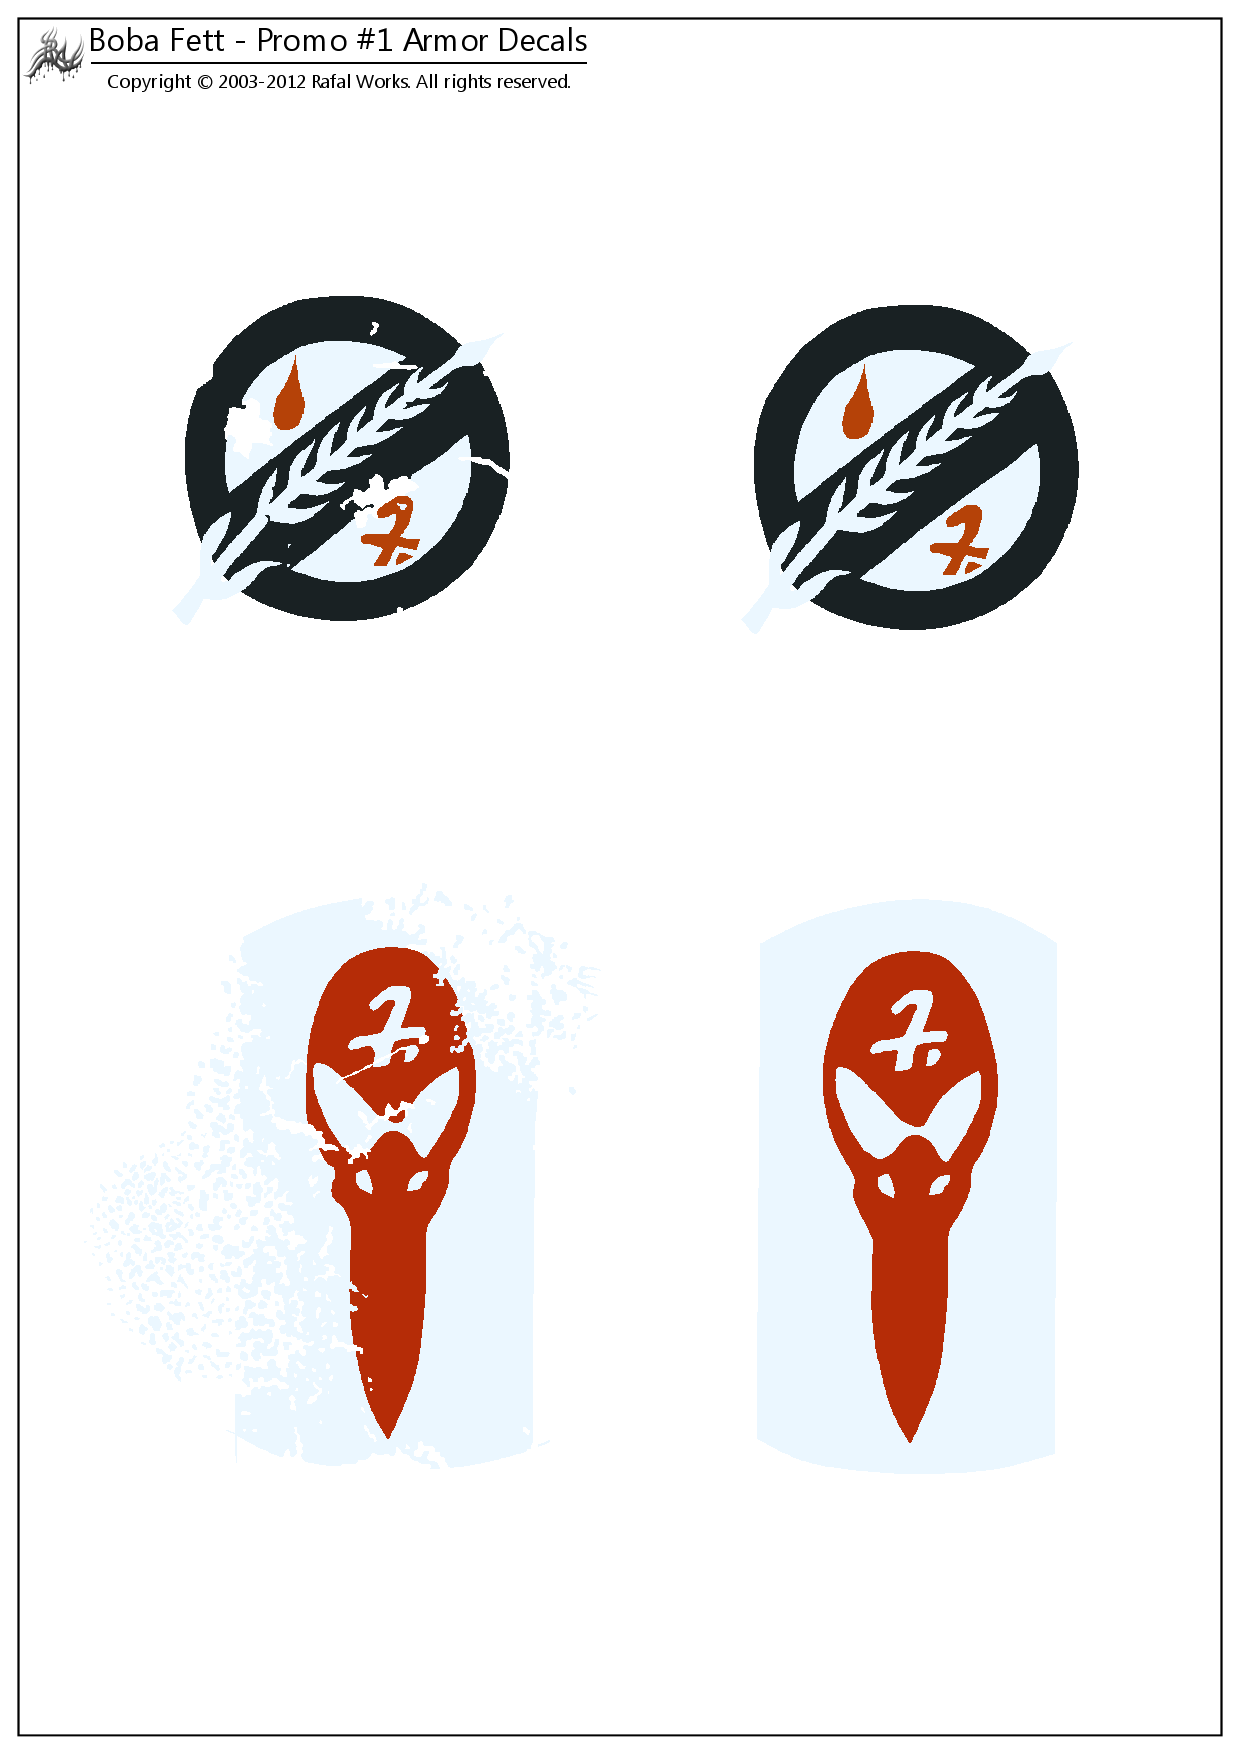 Promo1 Armor Decals A4.png